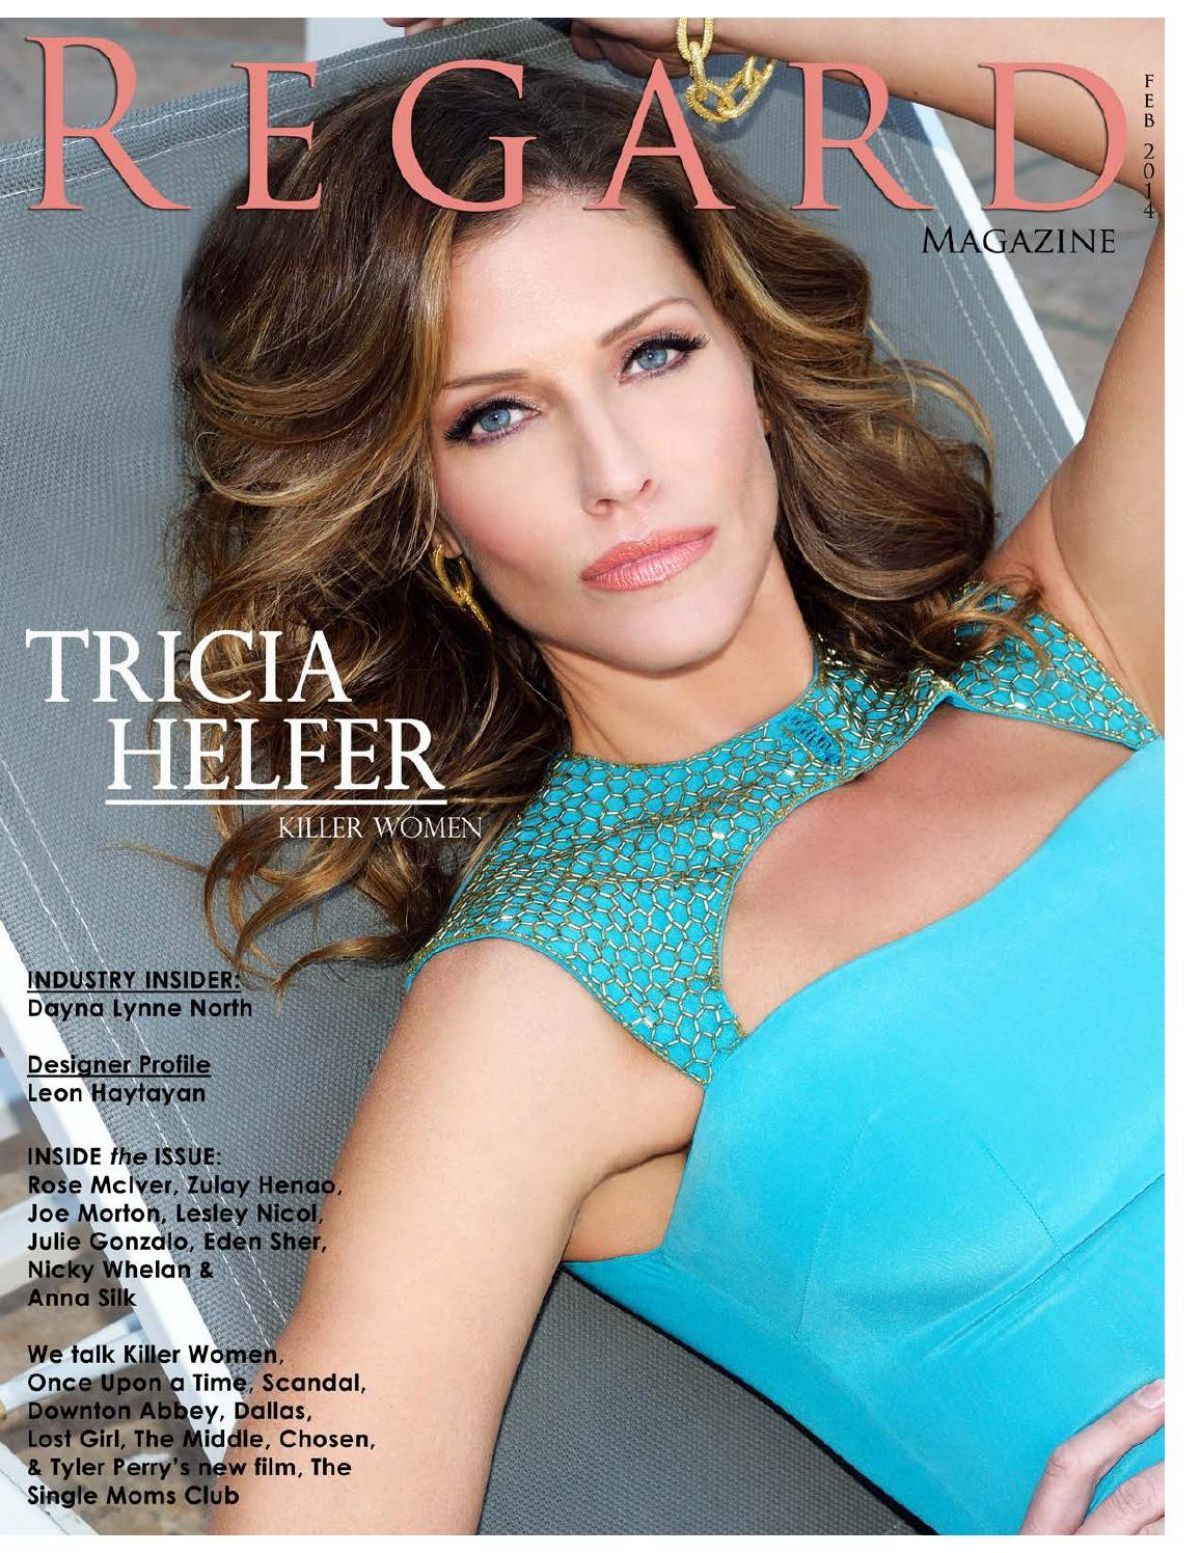 tricia helfer fansitetricia helfer lucifer, tricia helfer battlestar galactica, tricia helfer 2016, tricia helfer фото, tricia helfer fansite, tricia helfer fan, tricia helfer 2017, tricia helfer husband, tricia helfer twitter, tricia helfer vimeo, tricia helfer rick and morty, tricia helfer interview, tricia helfer rosewood, tricia helfer instagram, tricia helfer mass effect, tricia helfer maxim photos, tricia helfer wiki, tricia helfer height in feet, tricia helfer howlin for you, tricia helfer victoria's secret